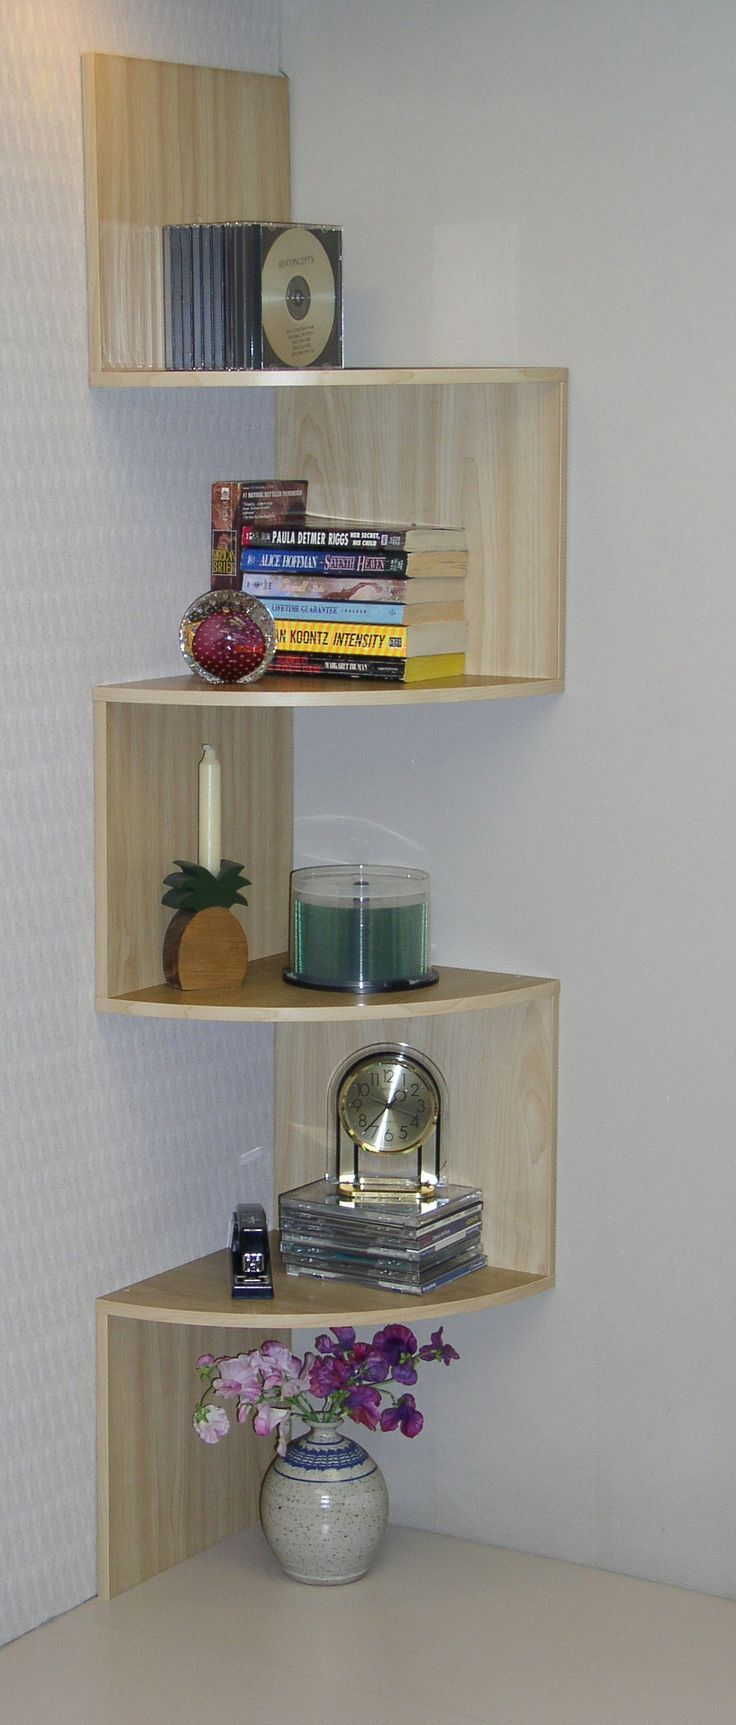 15 best images about shelves & storage on Pinterest